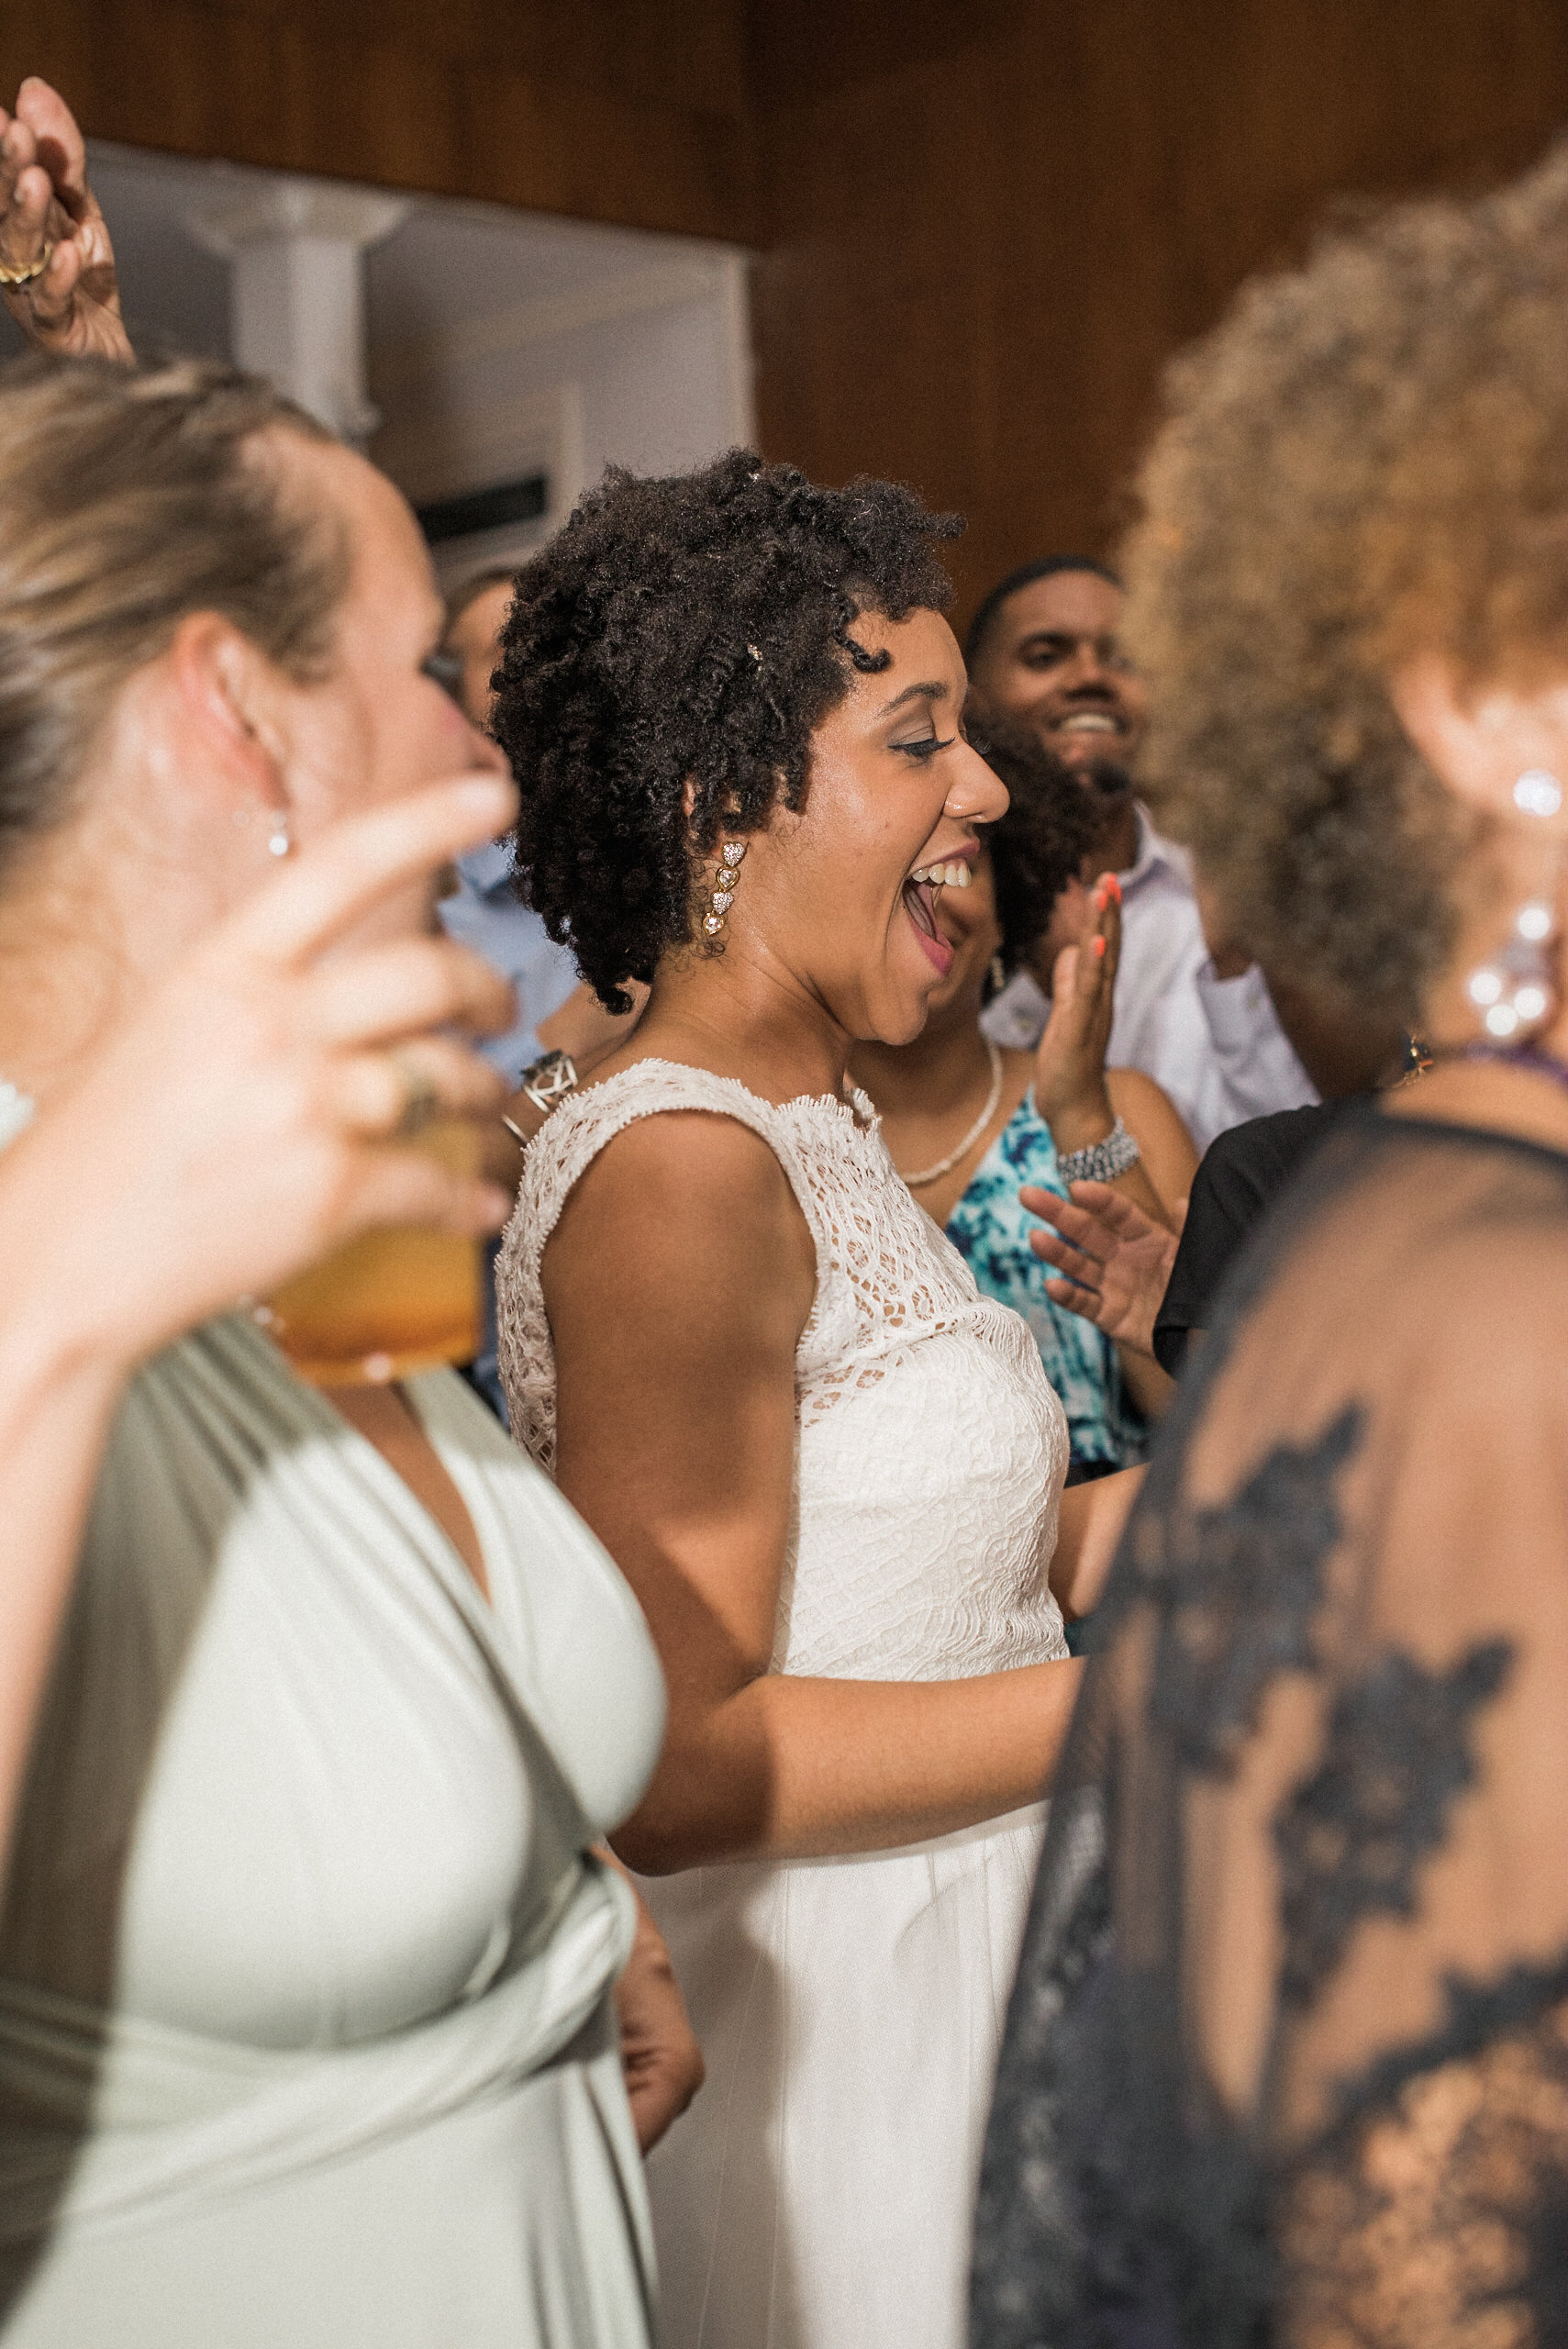 Bride in crowd of people at reception